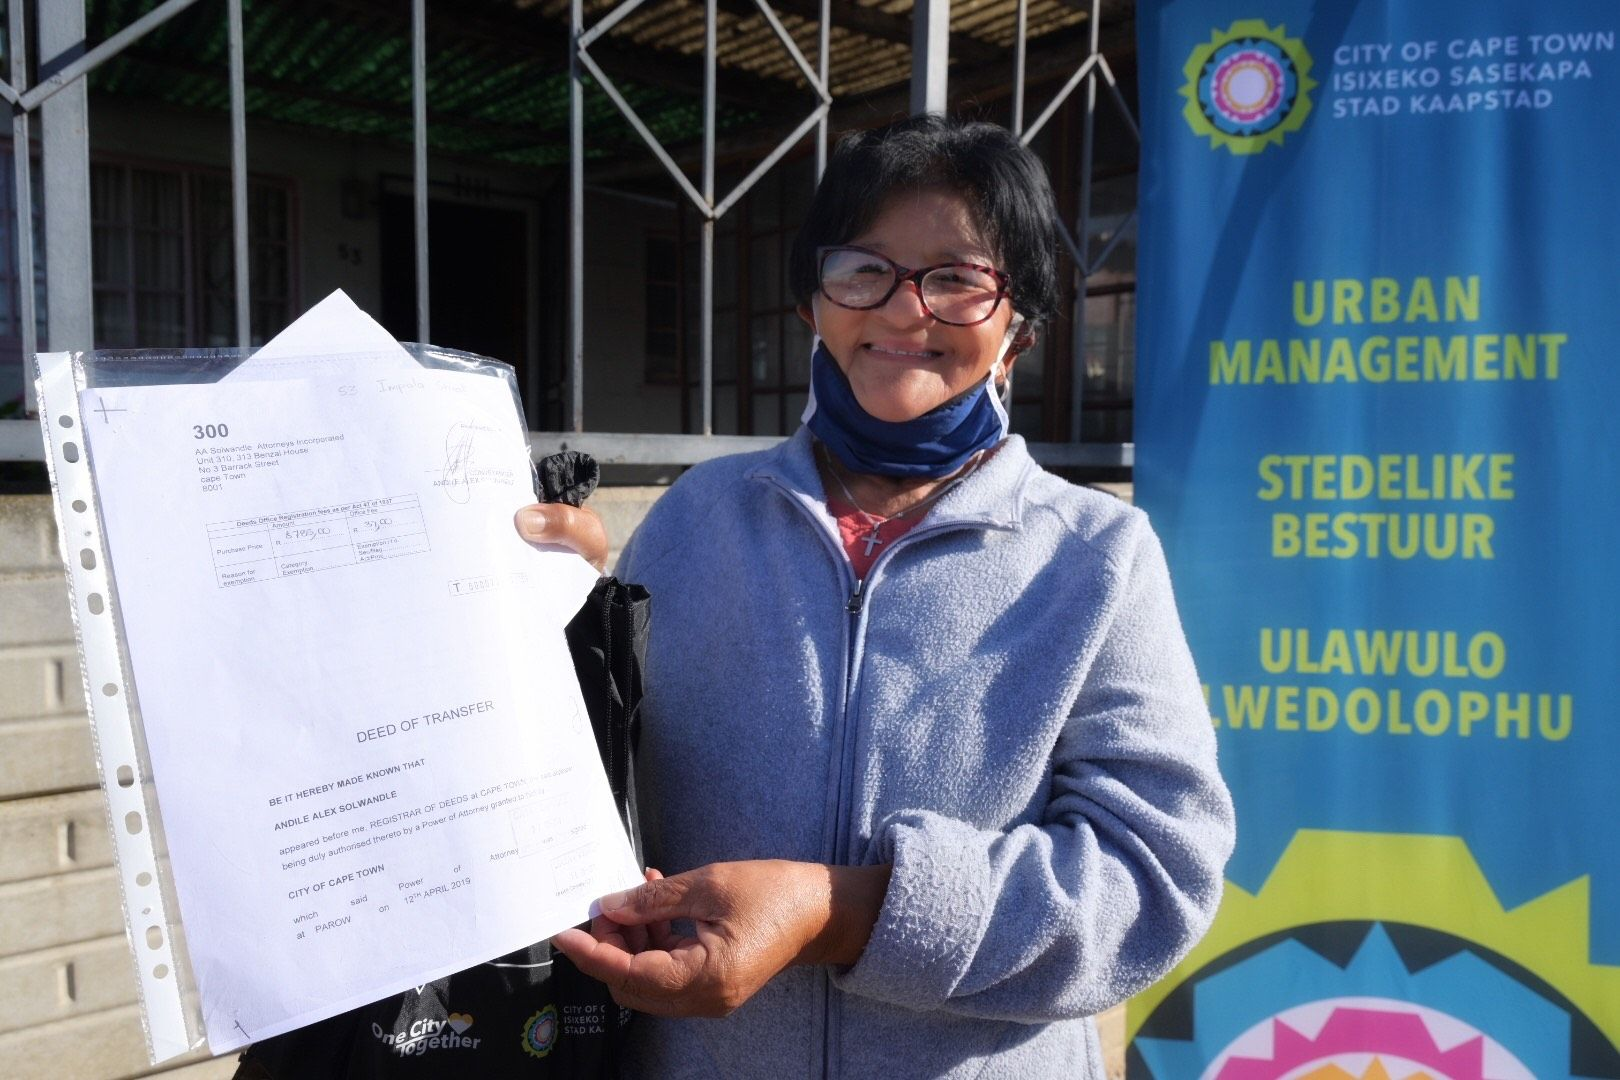 The City continues to deliver title deeds to beneficiaries